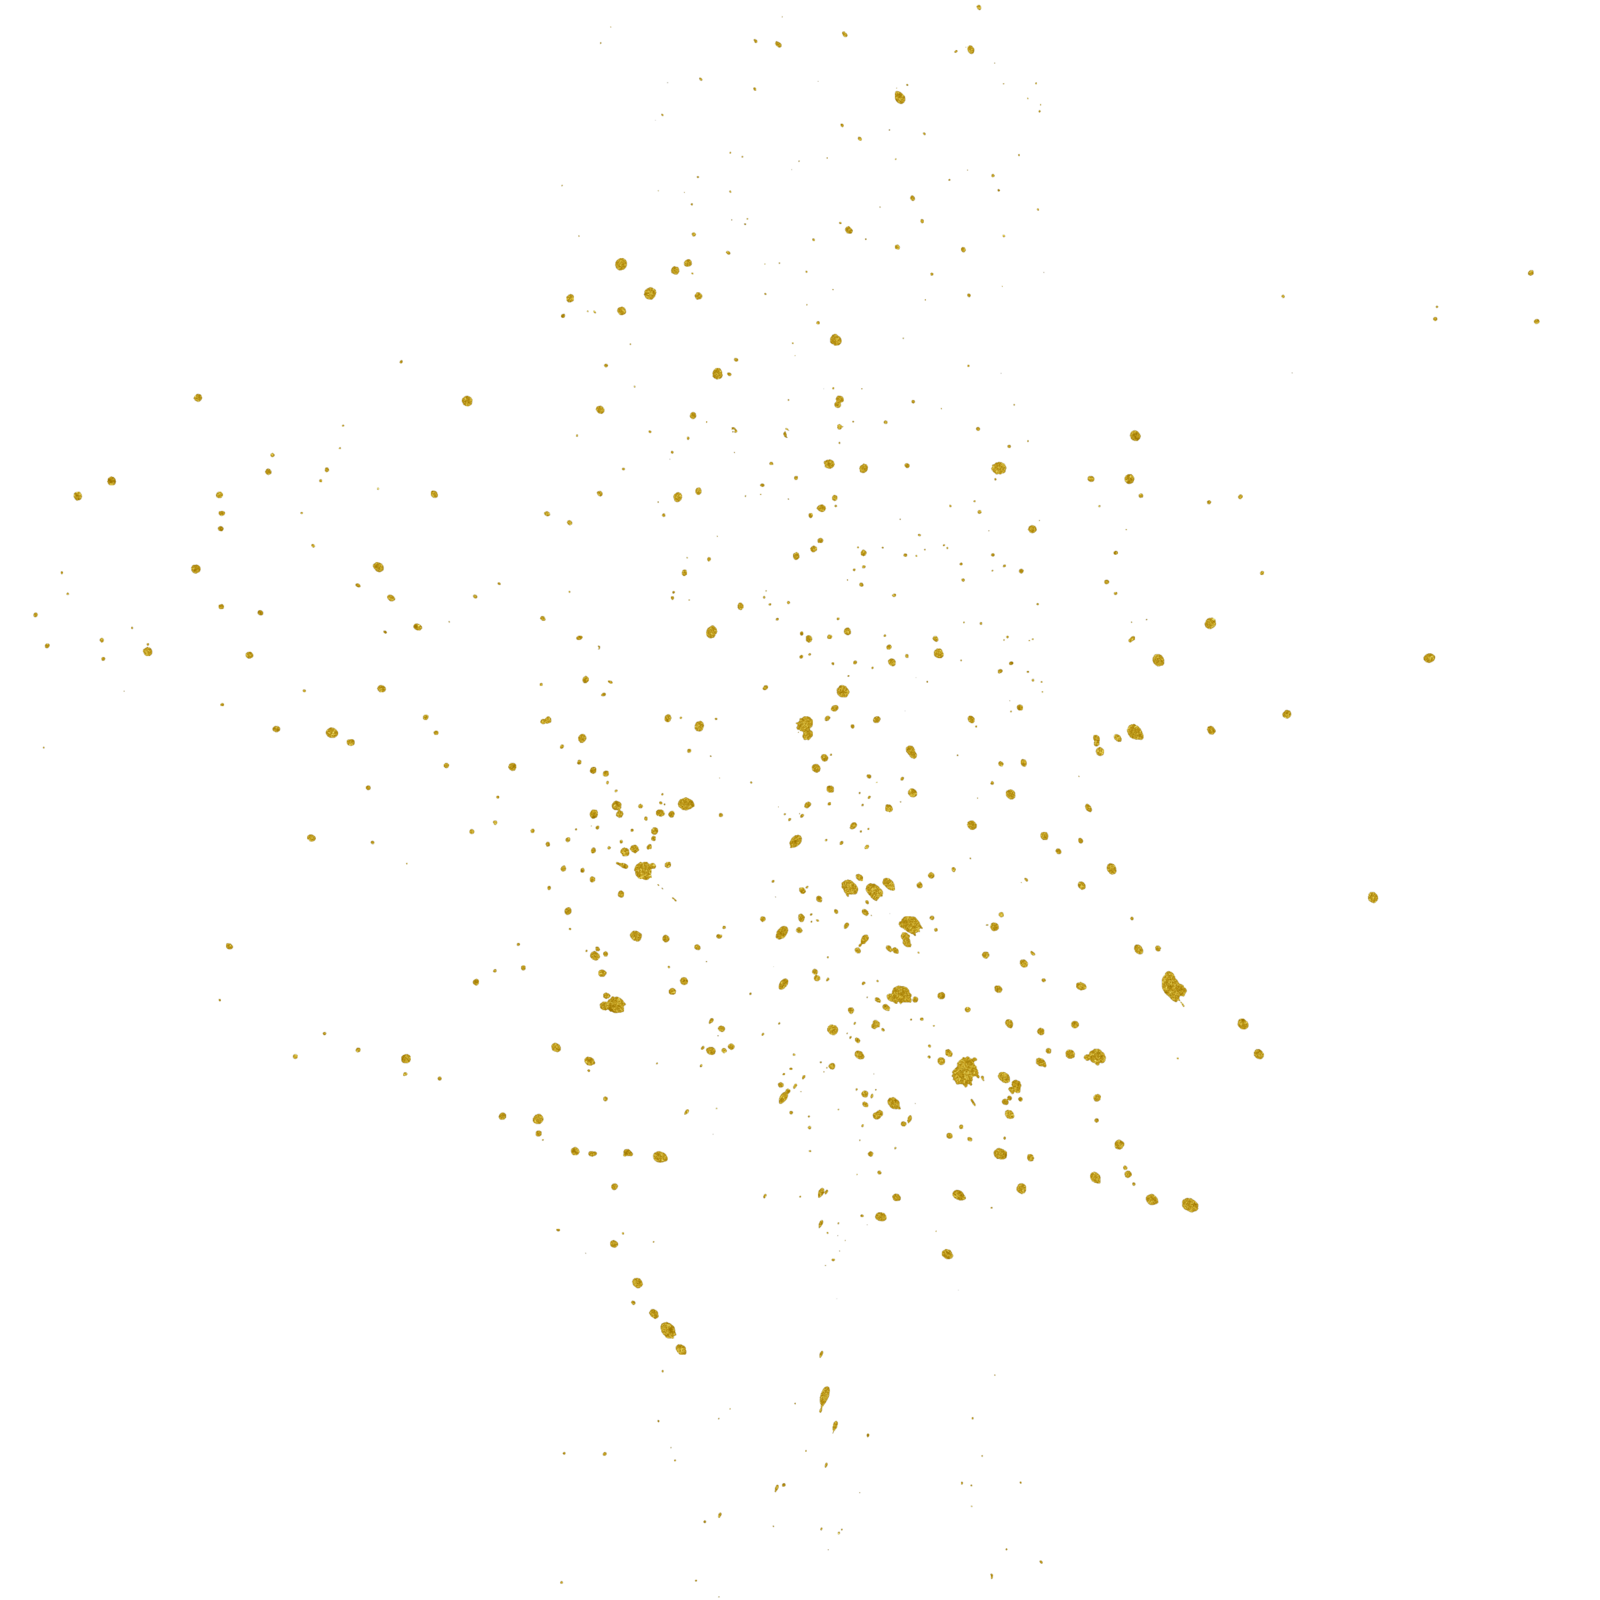 gold_dust_dots_specks_overlay_60